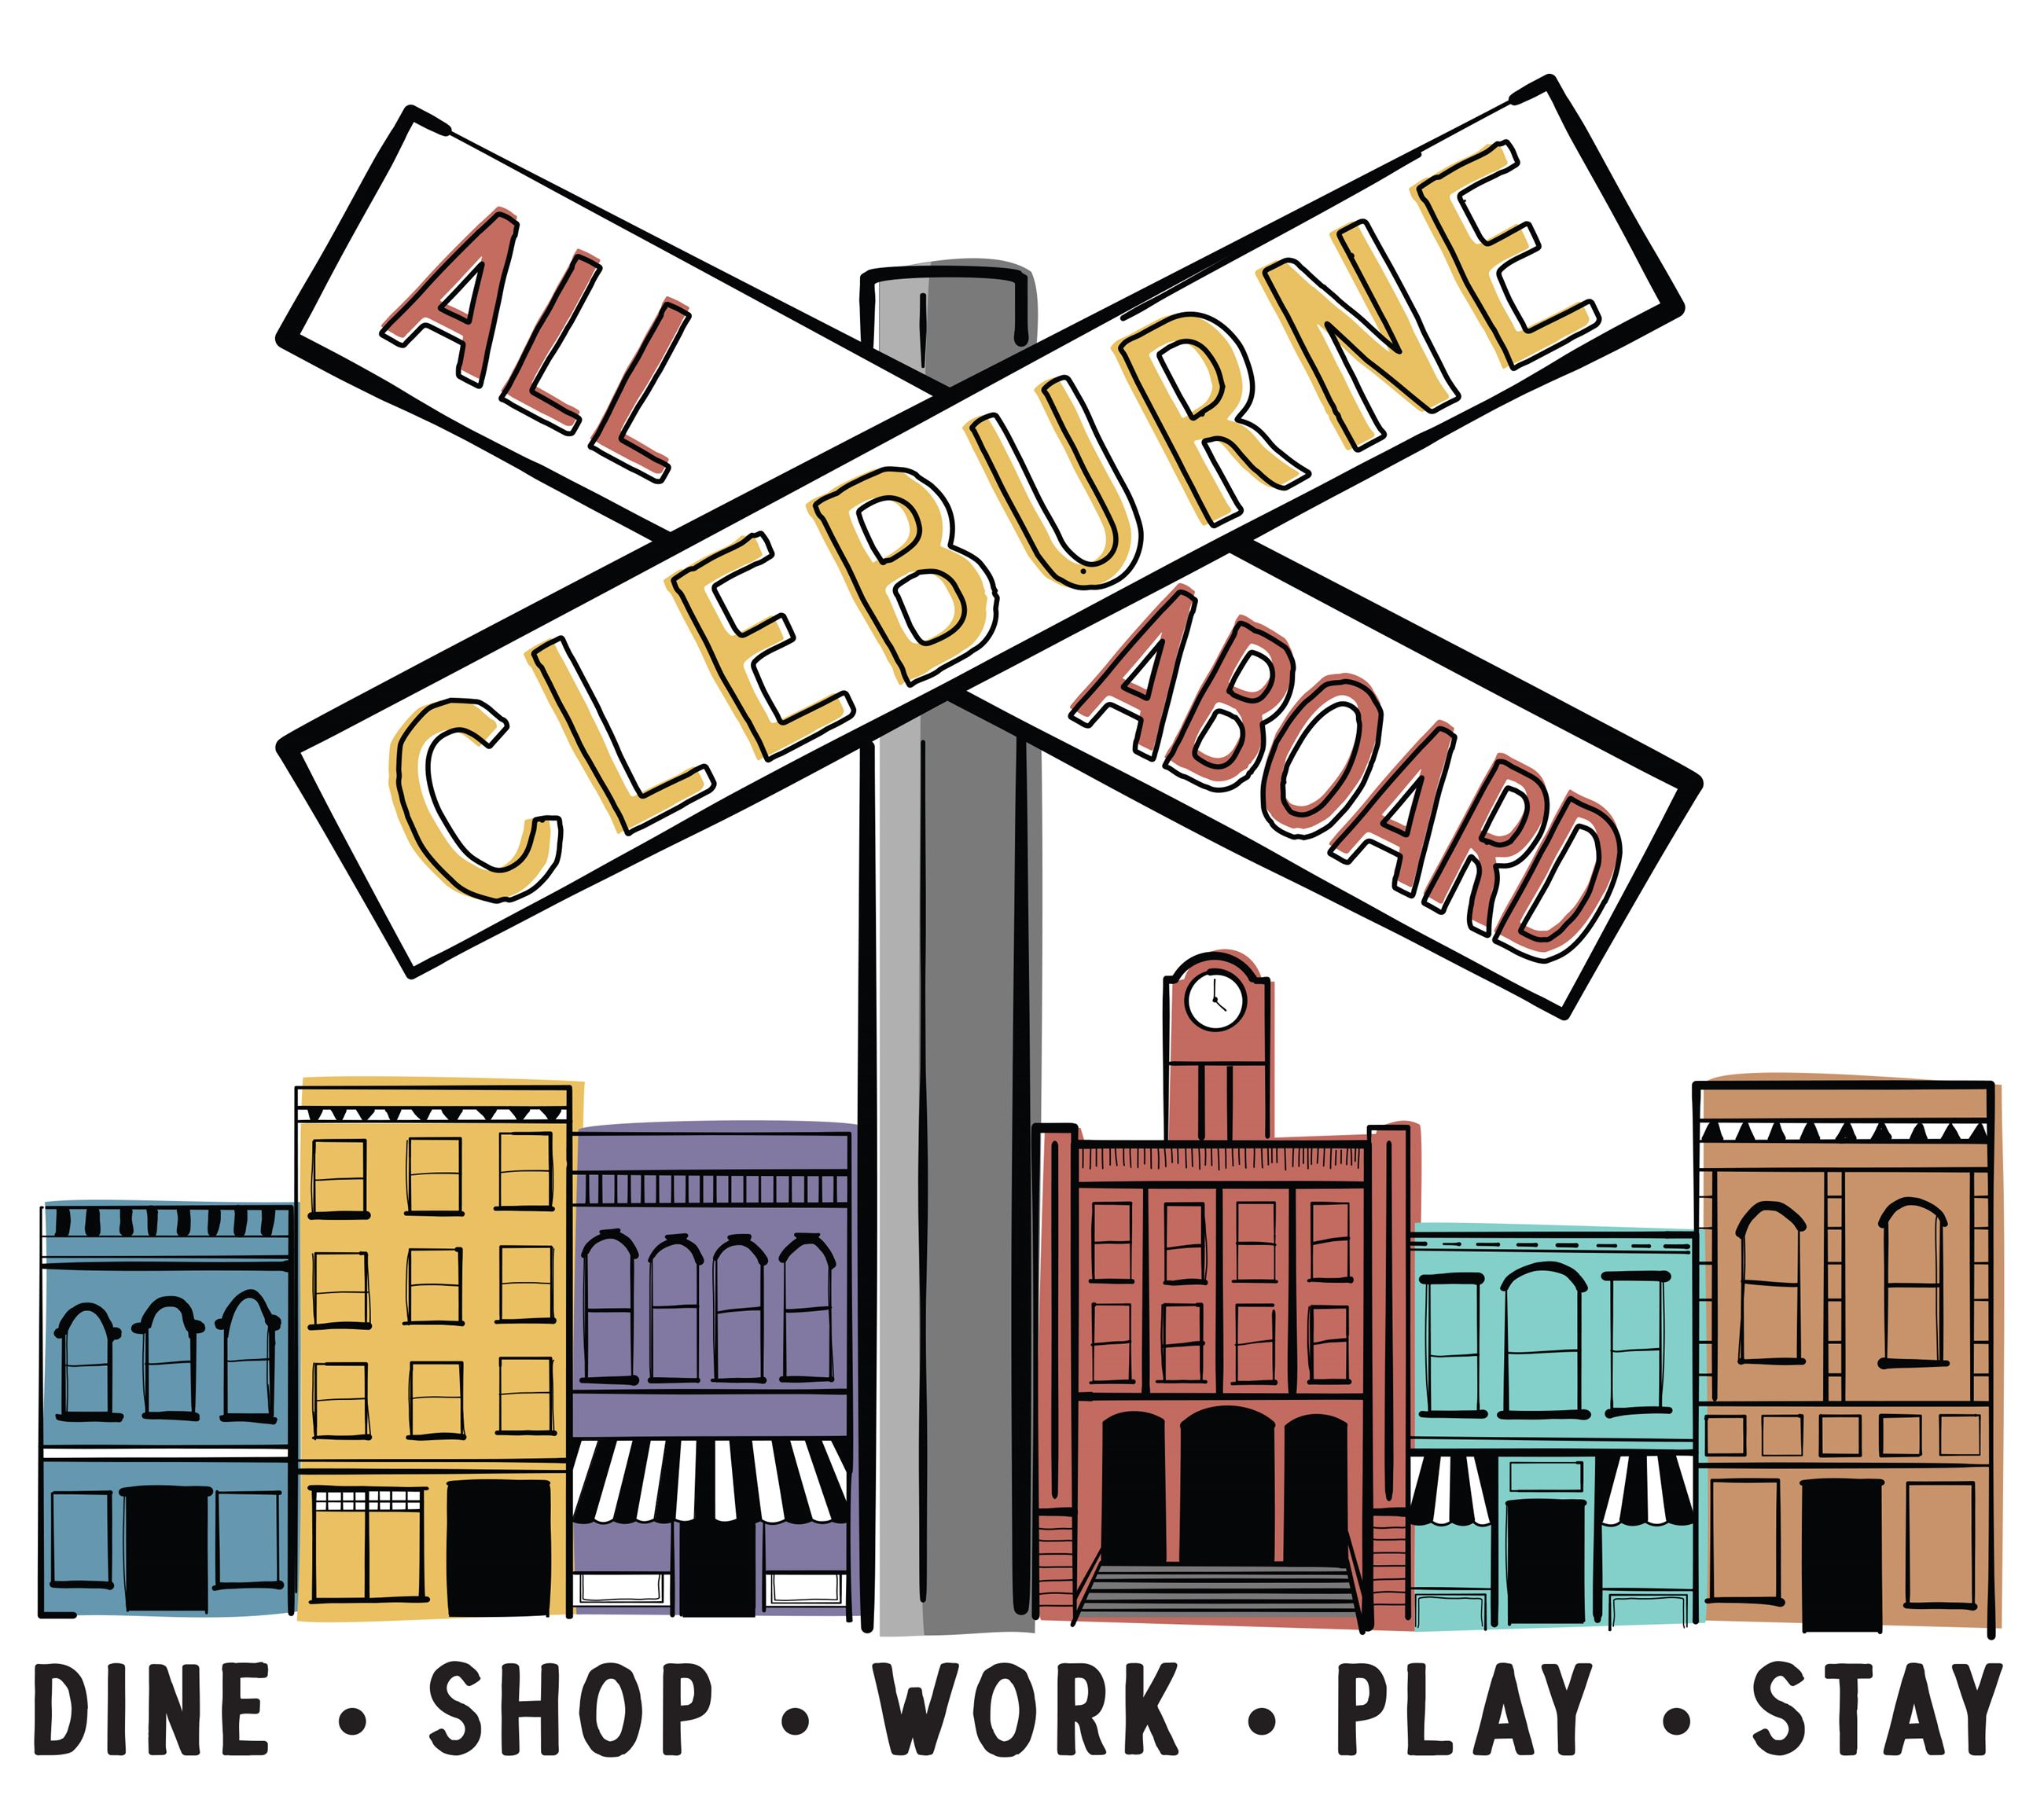 All Aboard Cleburne Logo